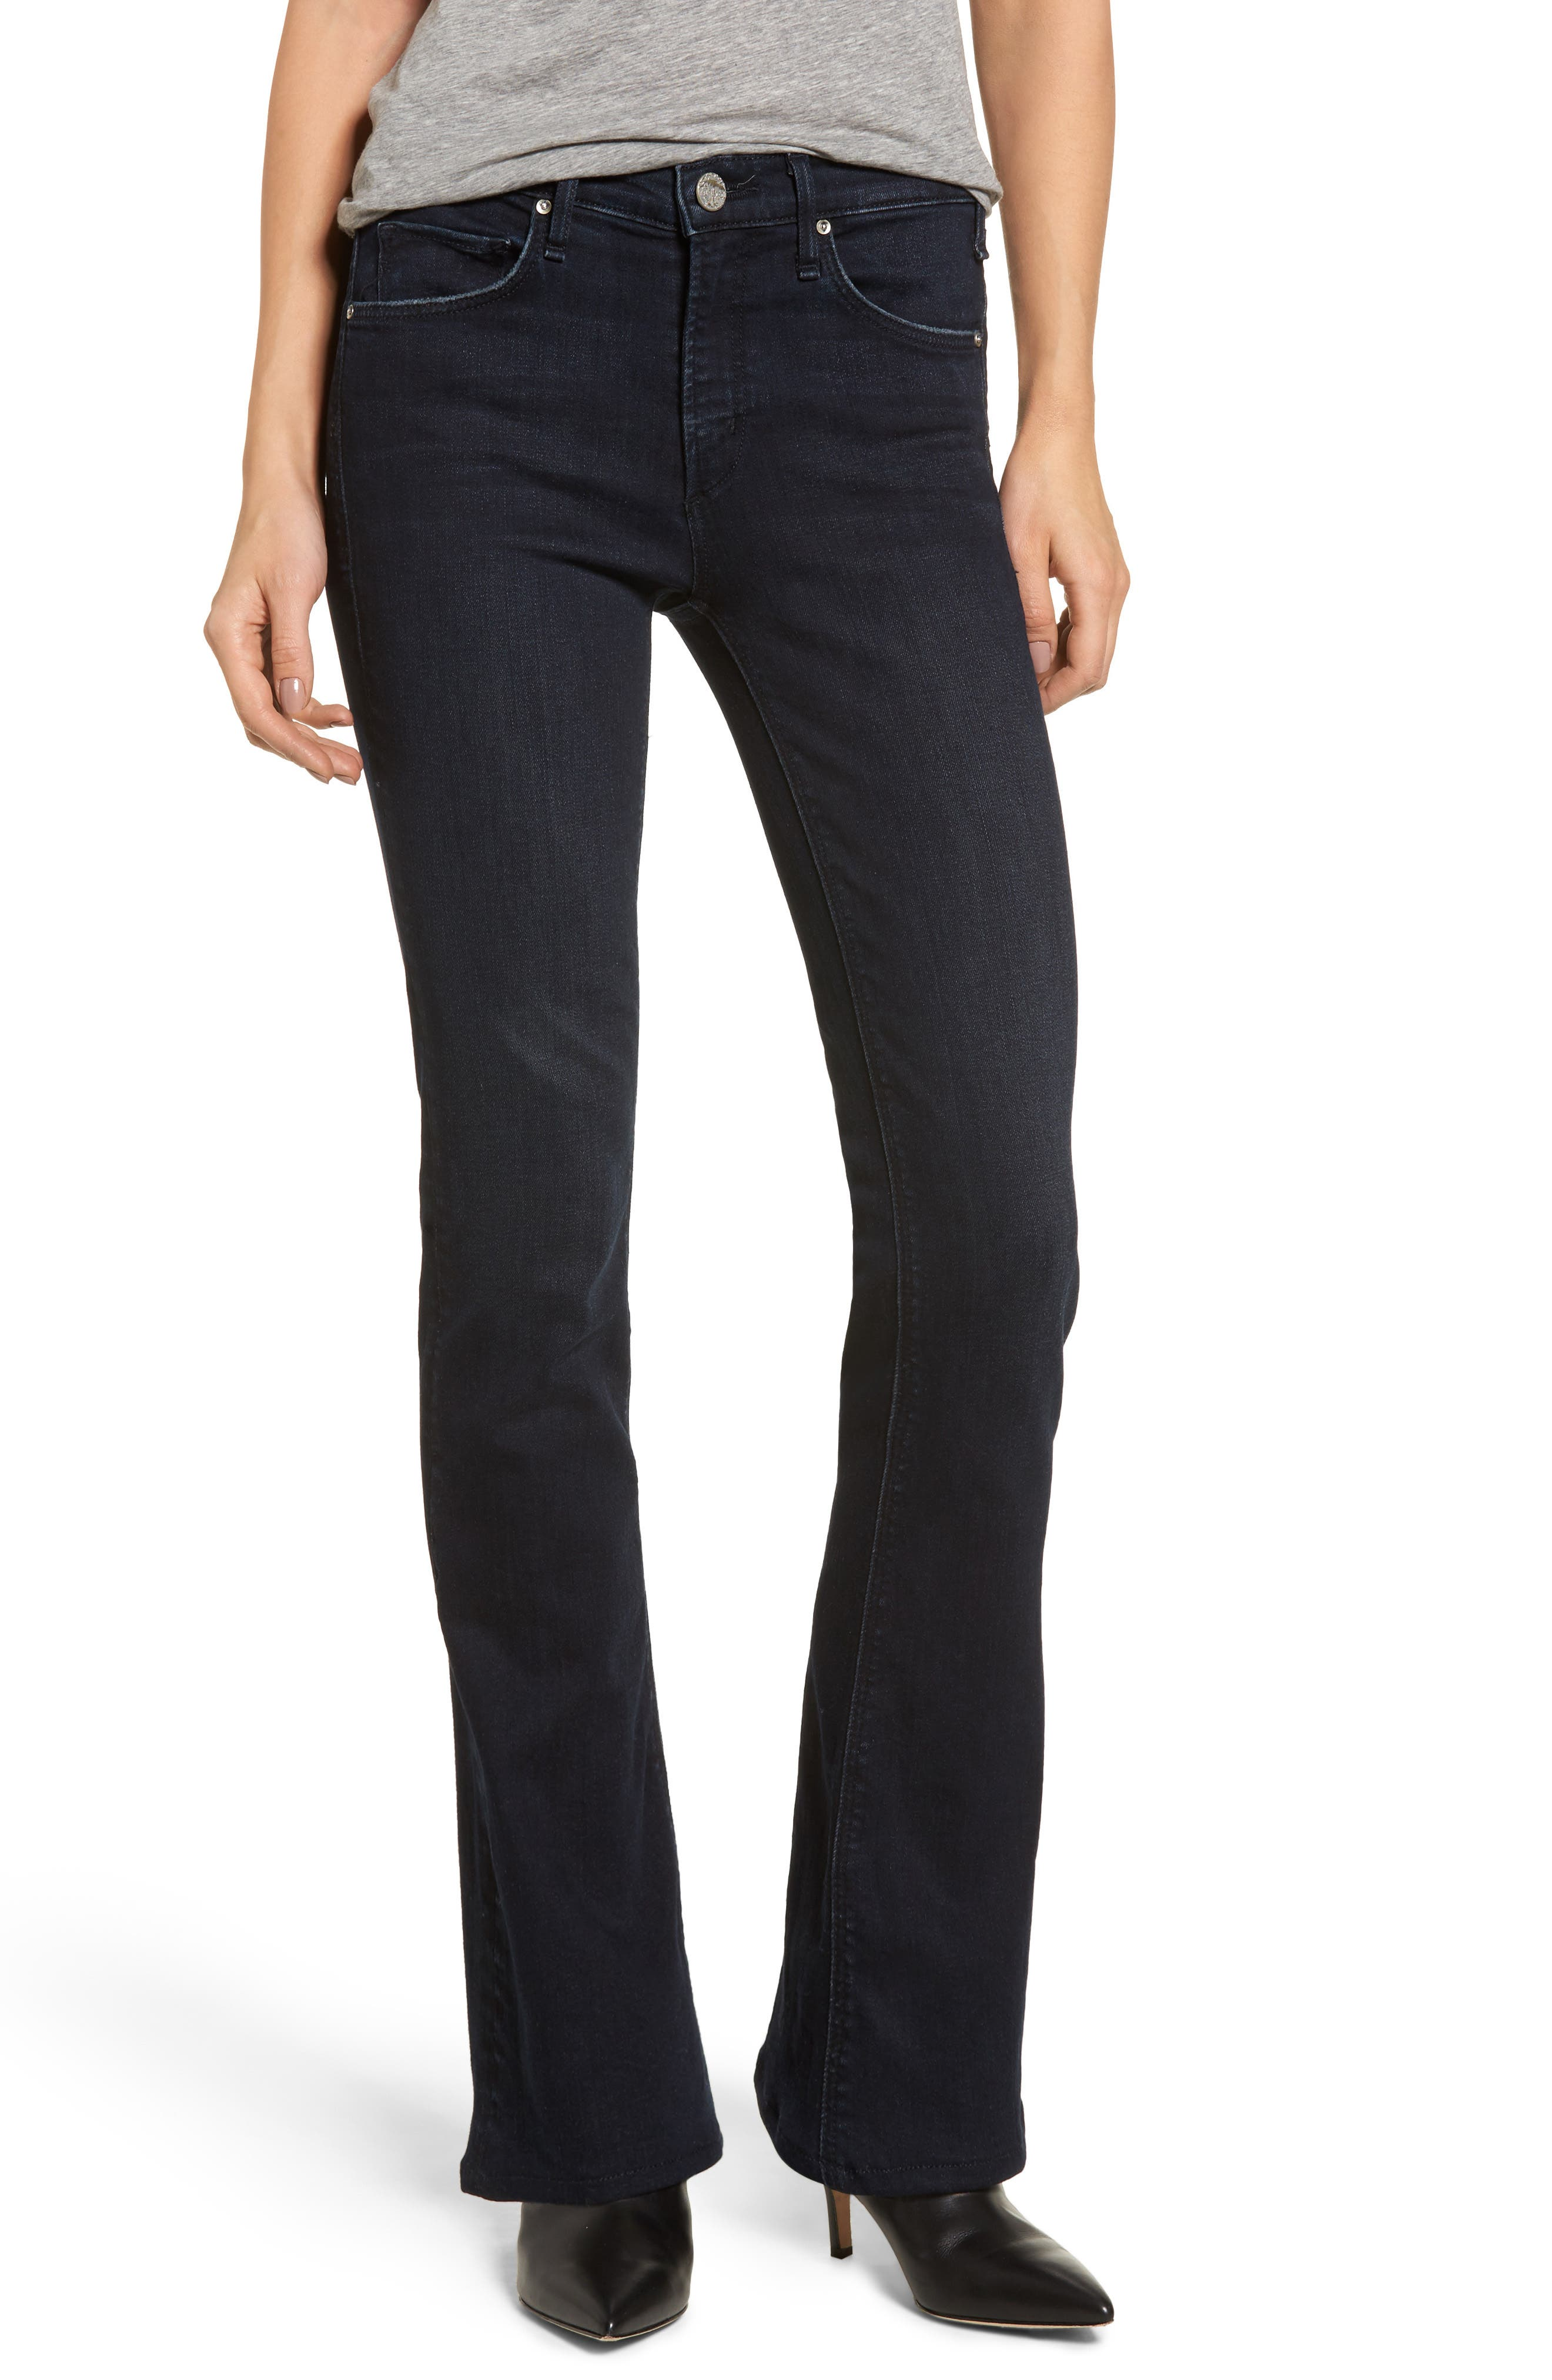 Alternate Image 1 Selected - McGuire Gainsbourg Bootcut Jeans (Aja)